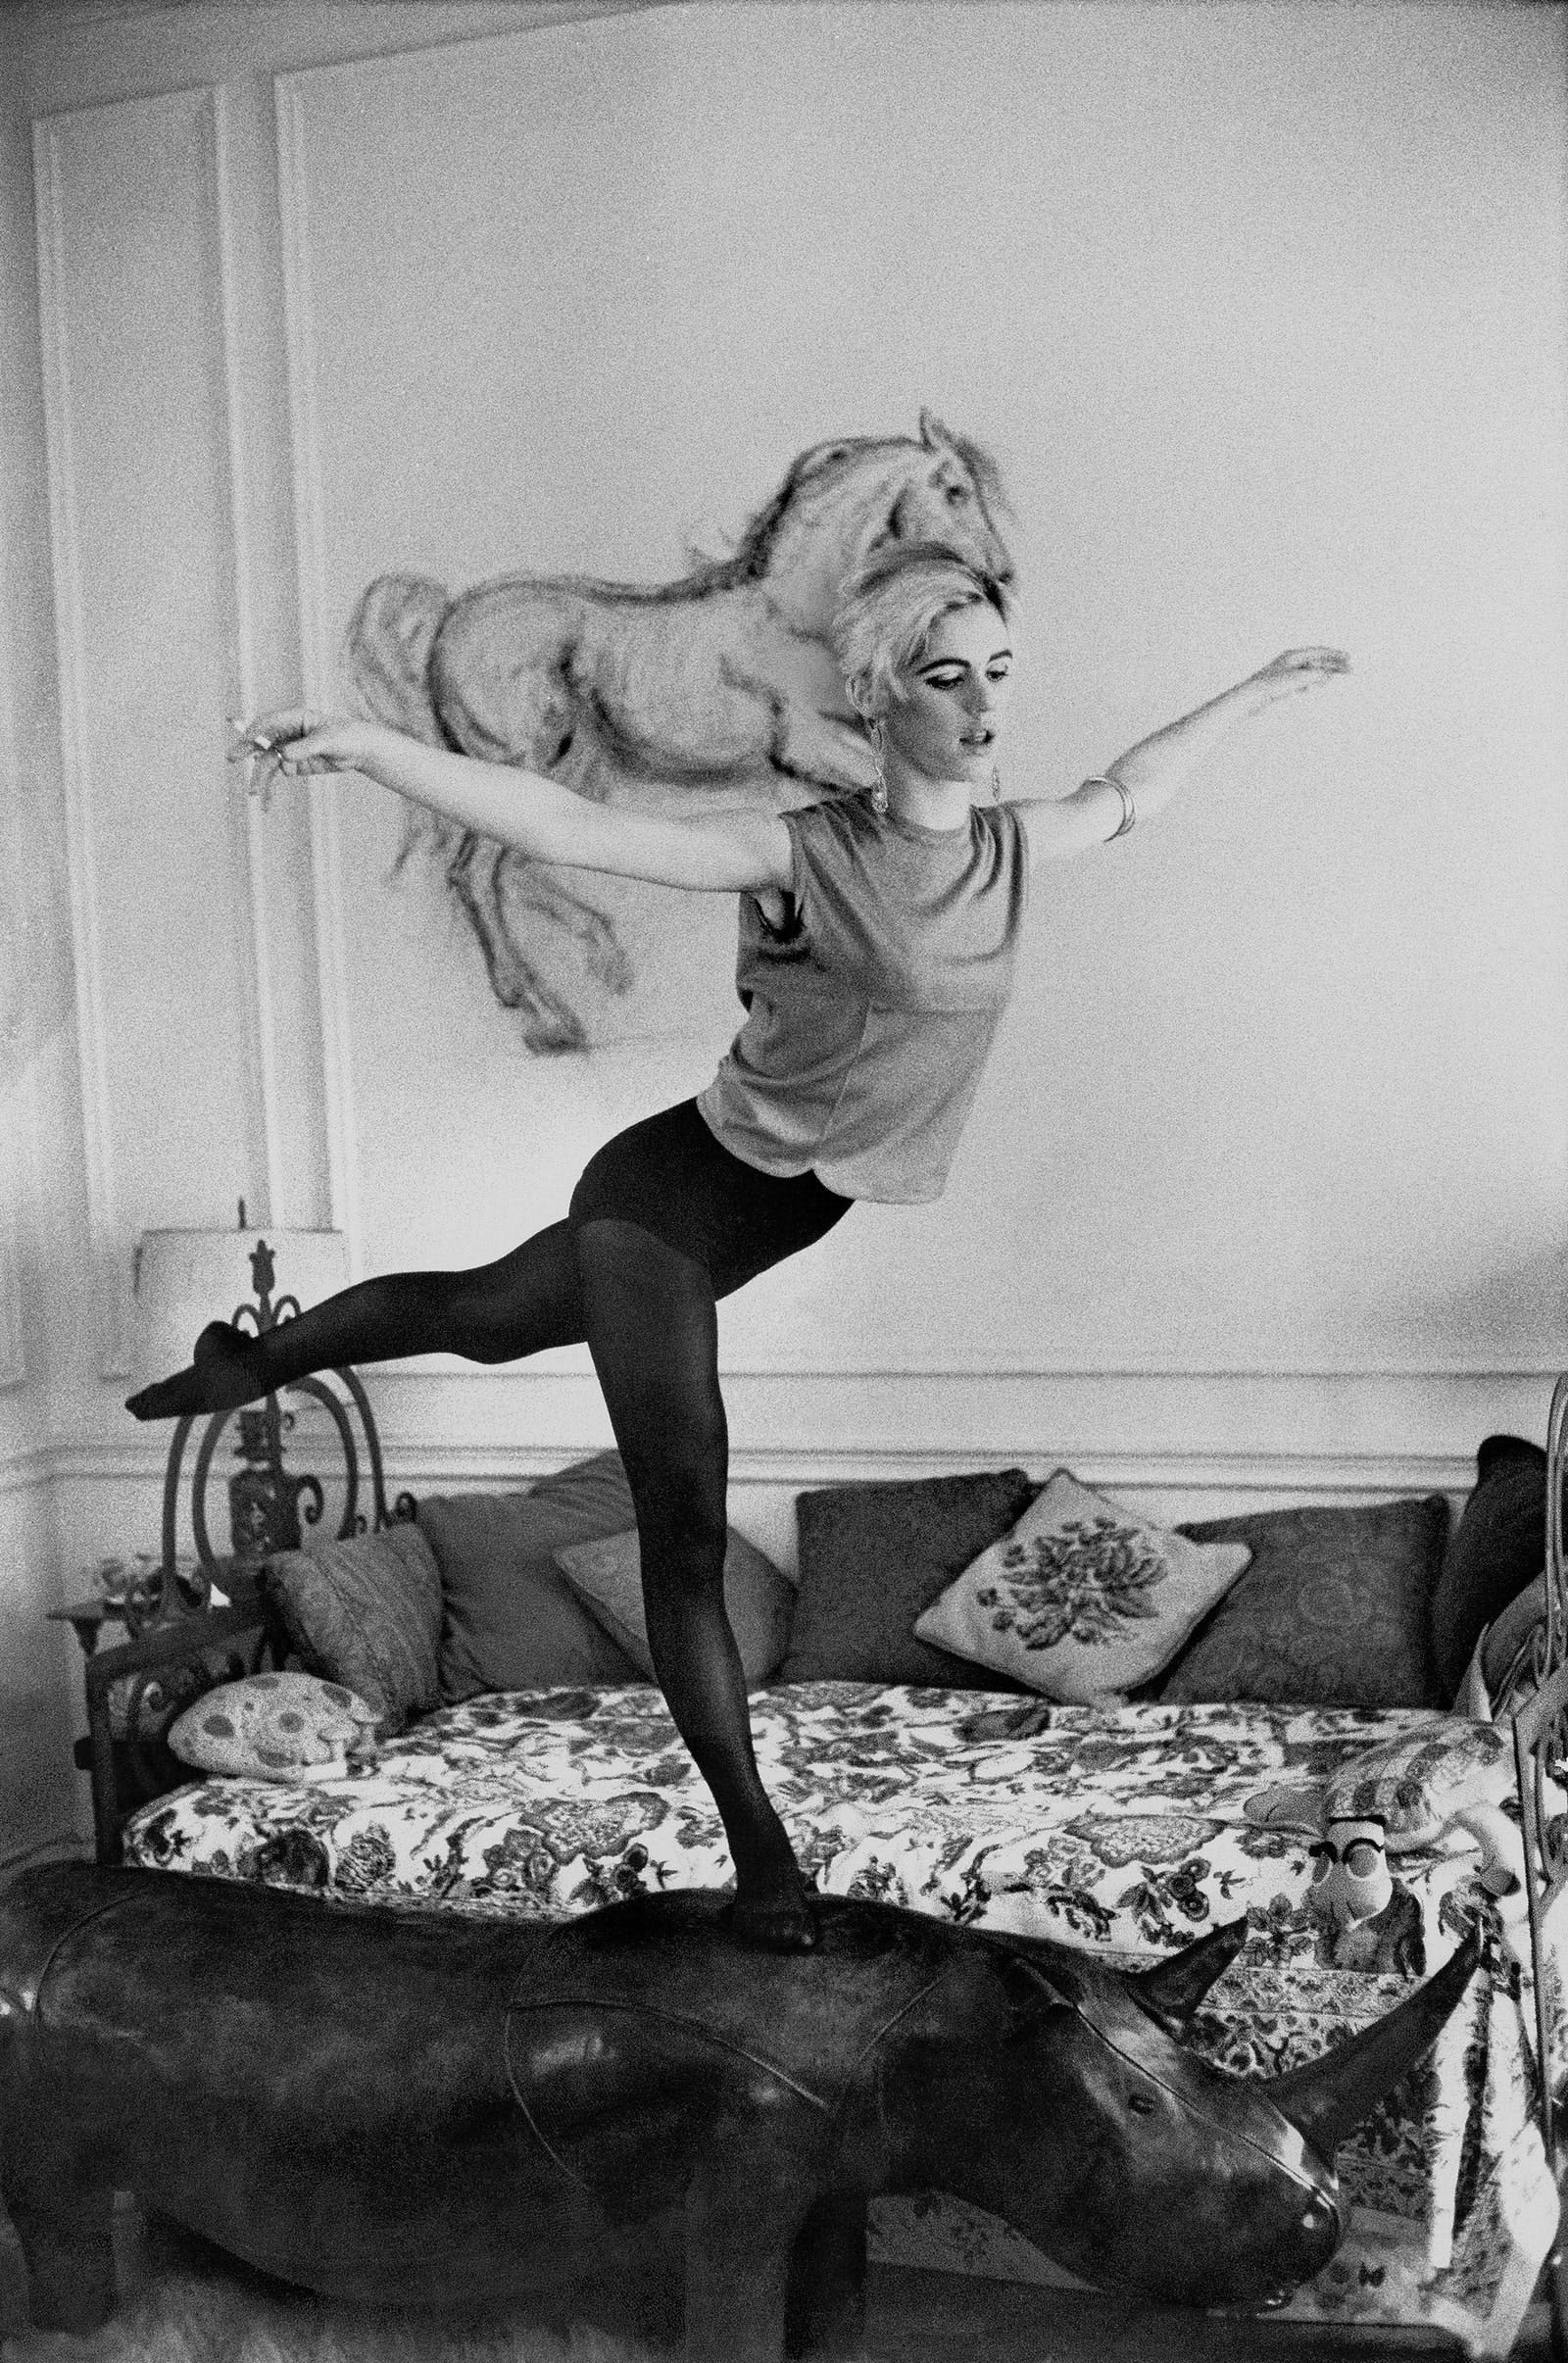 EDIE SEDGWICK'S MOST ICONIC OUTFITS